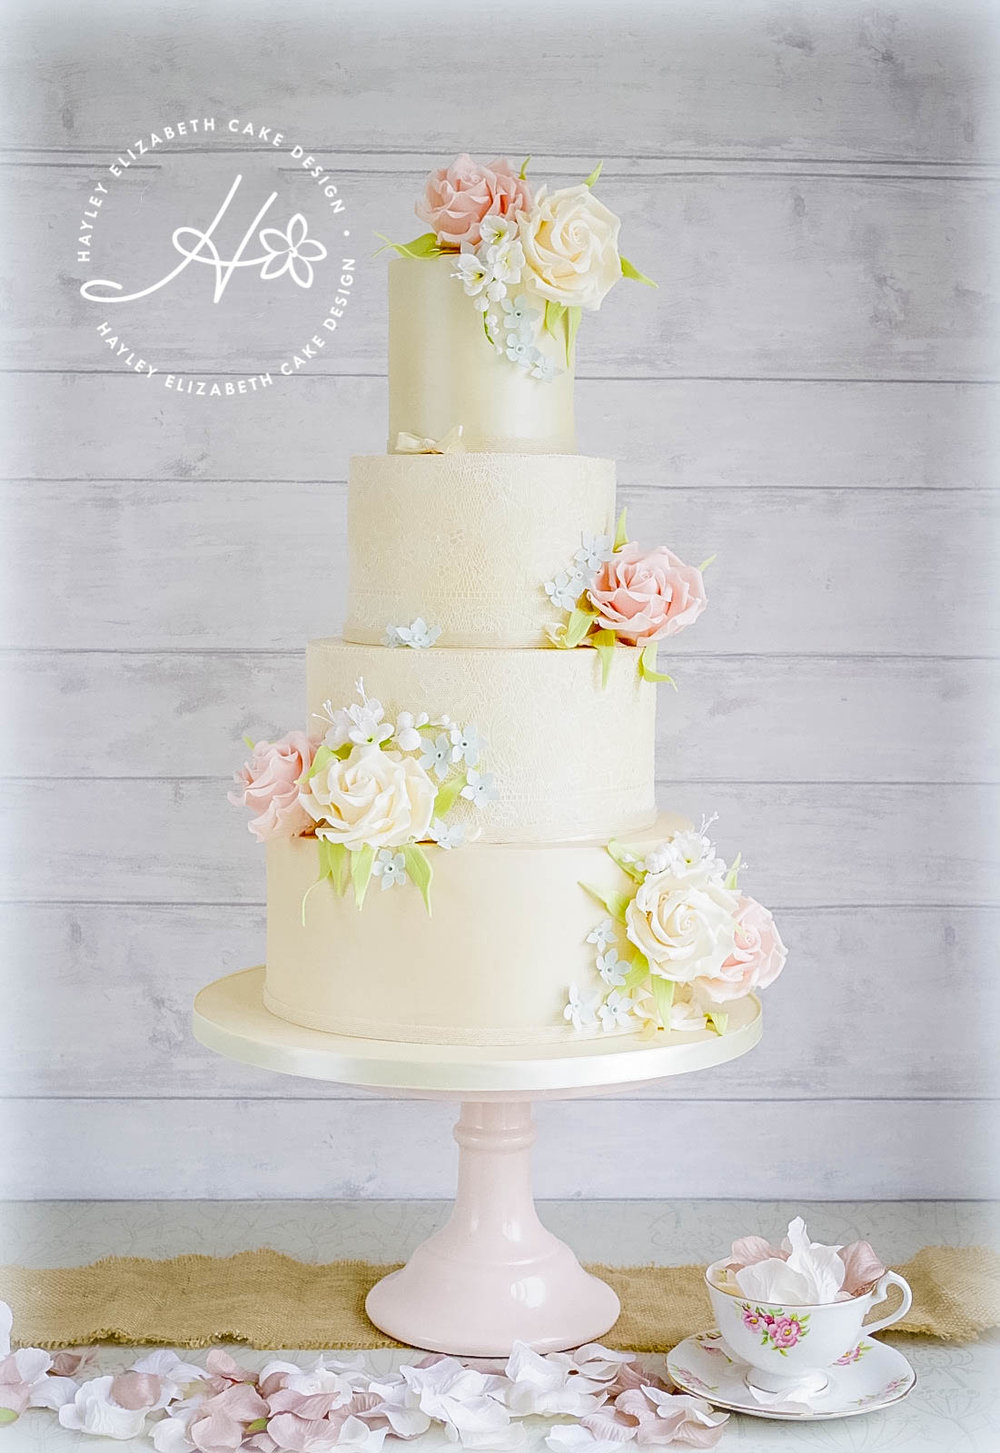 ivory-and-lace-wedding-cake-sugar-flowers.jpg